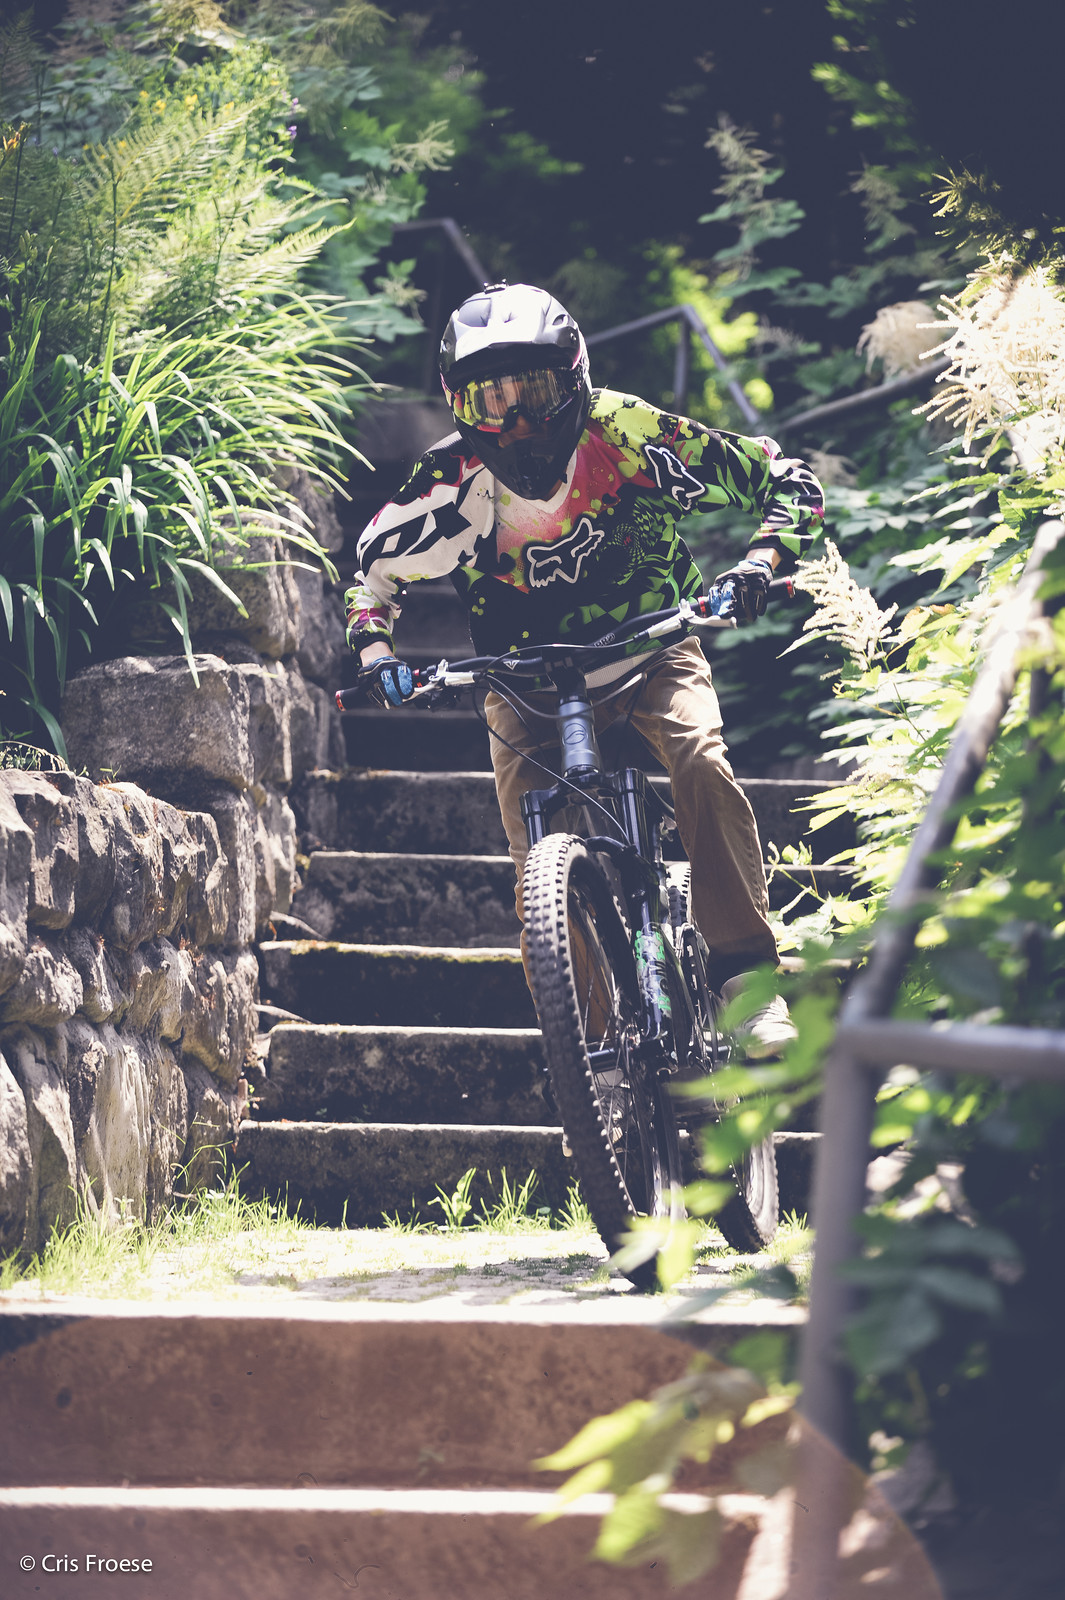 qra splash-15 - MouflonsRiders - Mountain Biking Pictures - Vital MTB